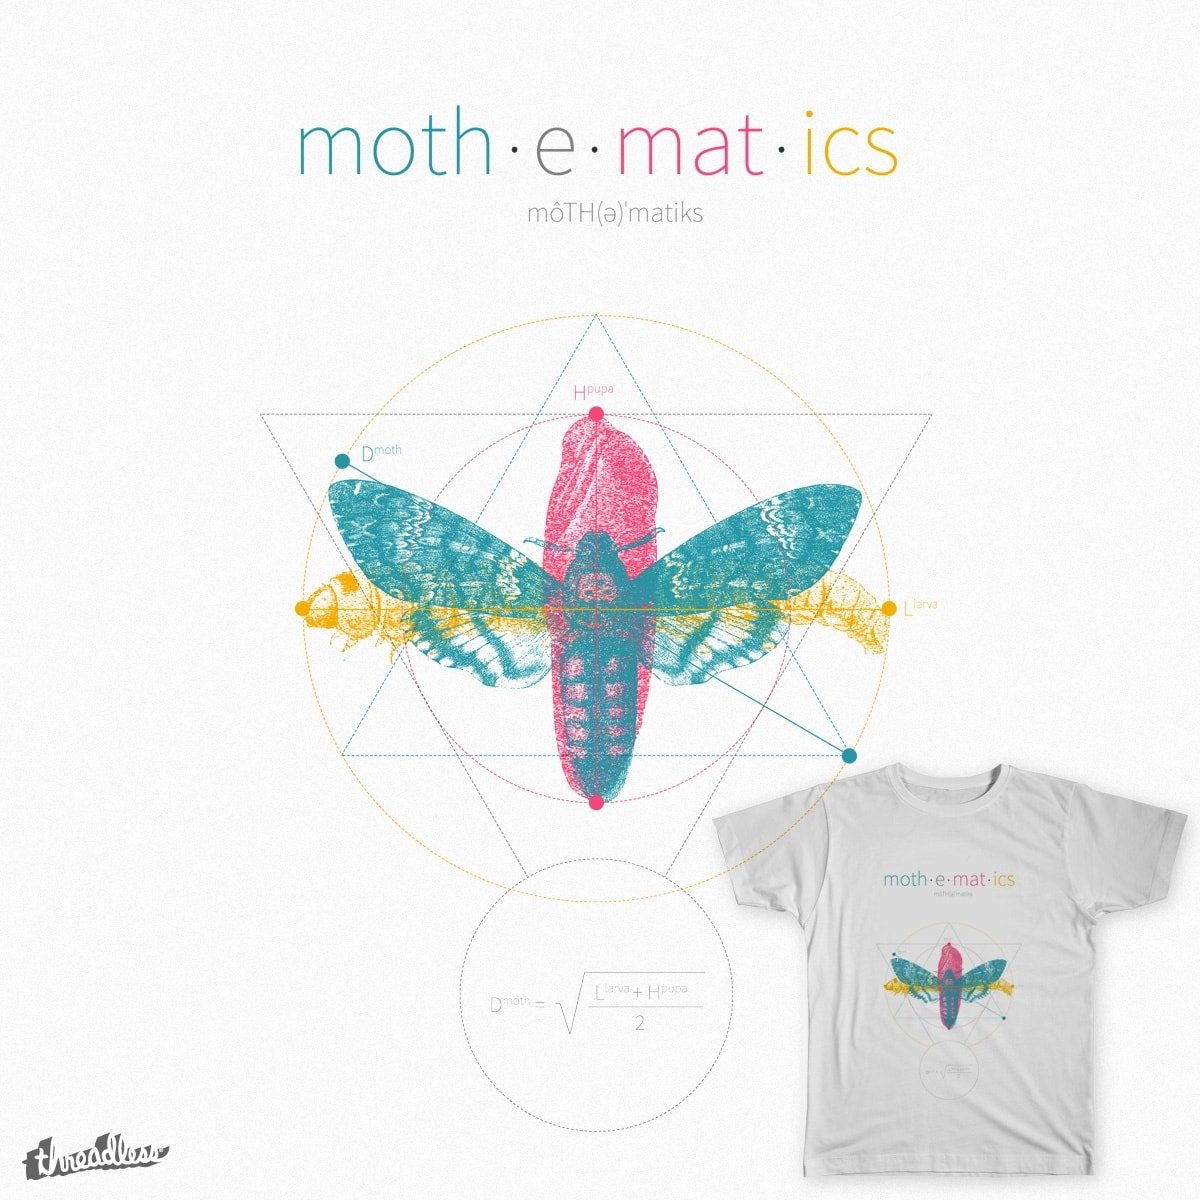 Mothematics by gotoandplay on Threadless